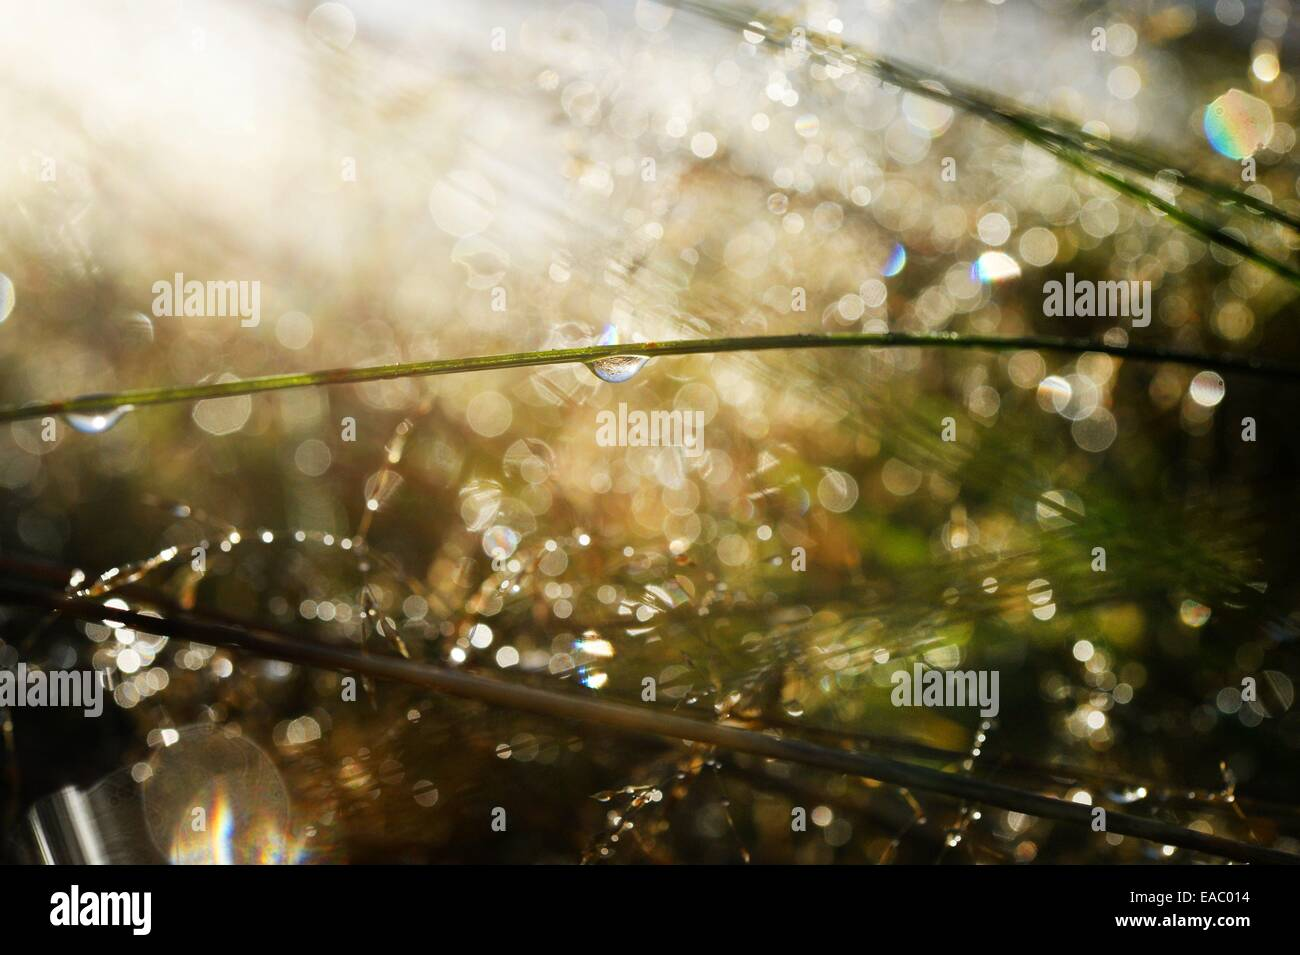 Gras with waterdrops, Germany, 11. November 2014. Photo: Frank May - Stock Image